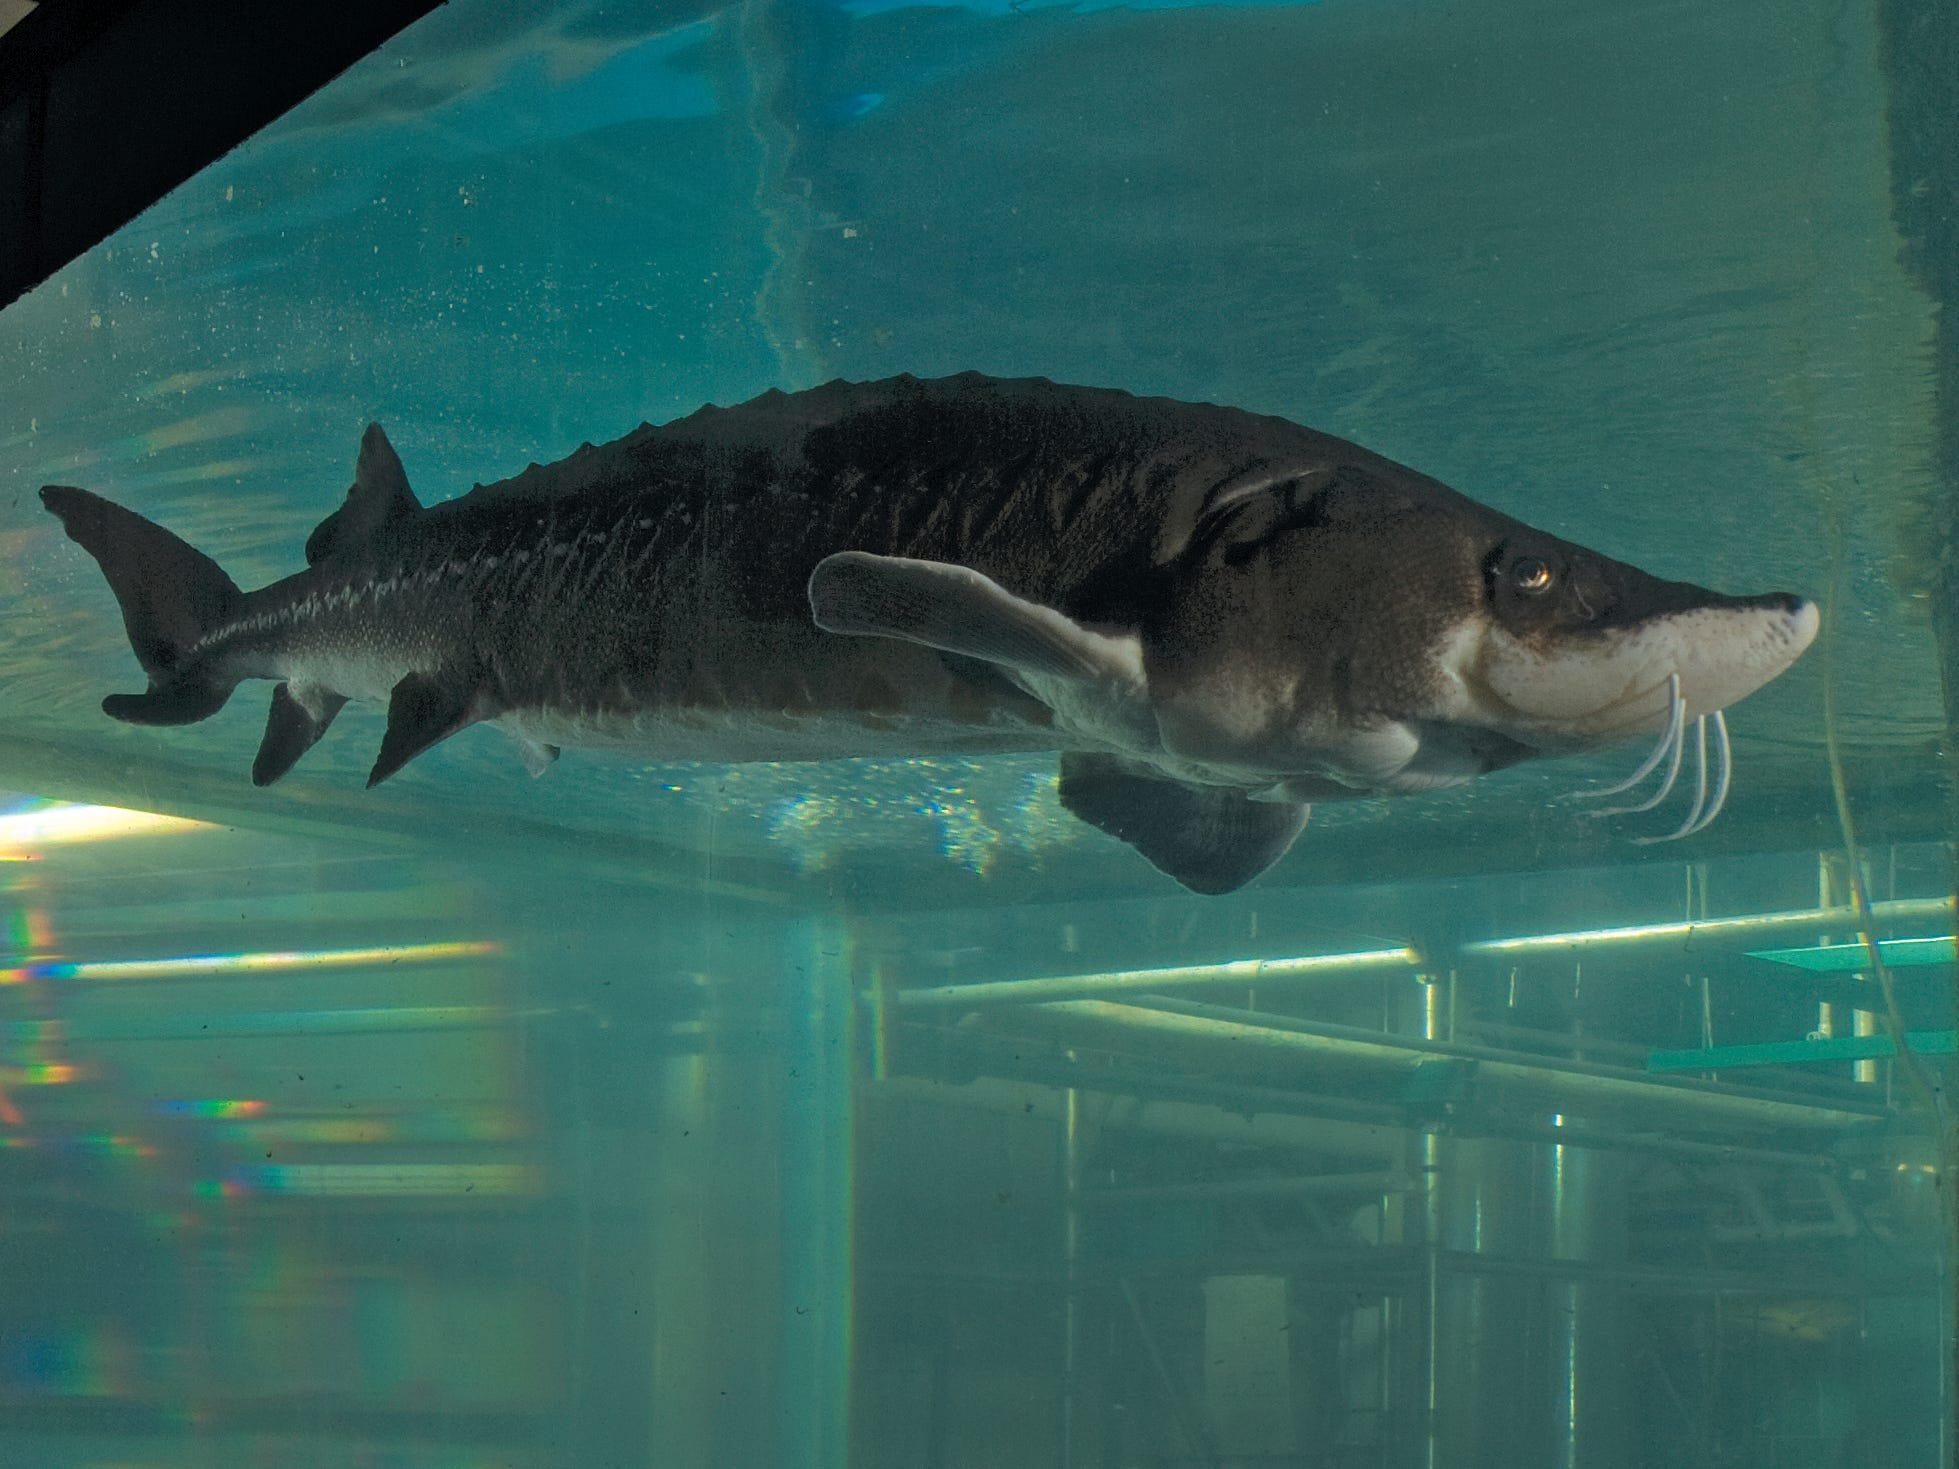 Lake sturgeon, shown here in a tank, has a thick skin, not scales.